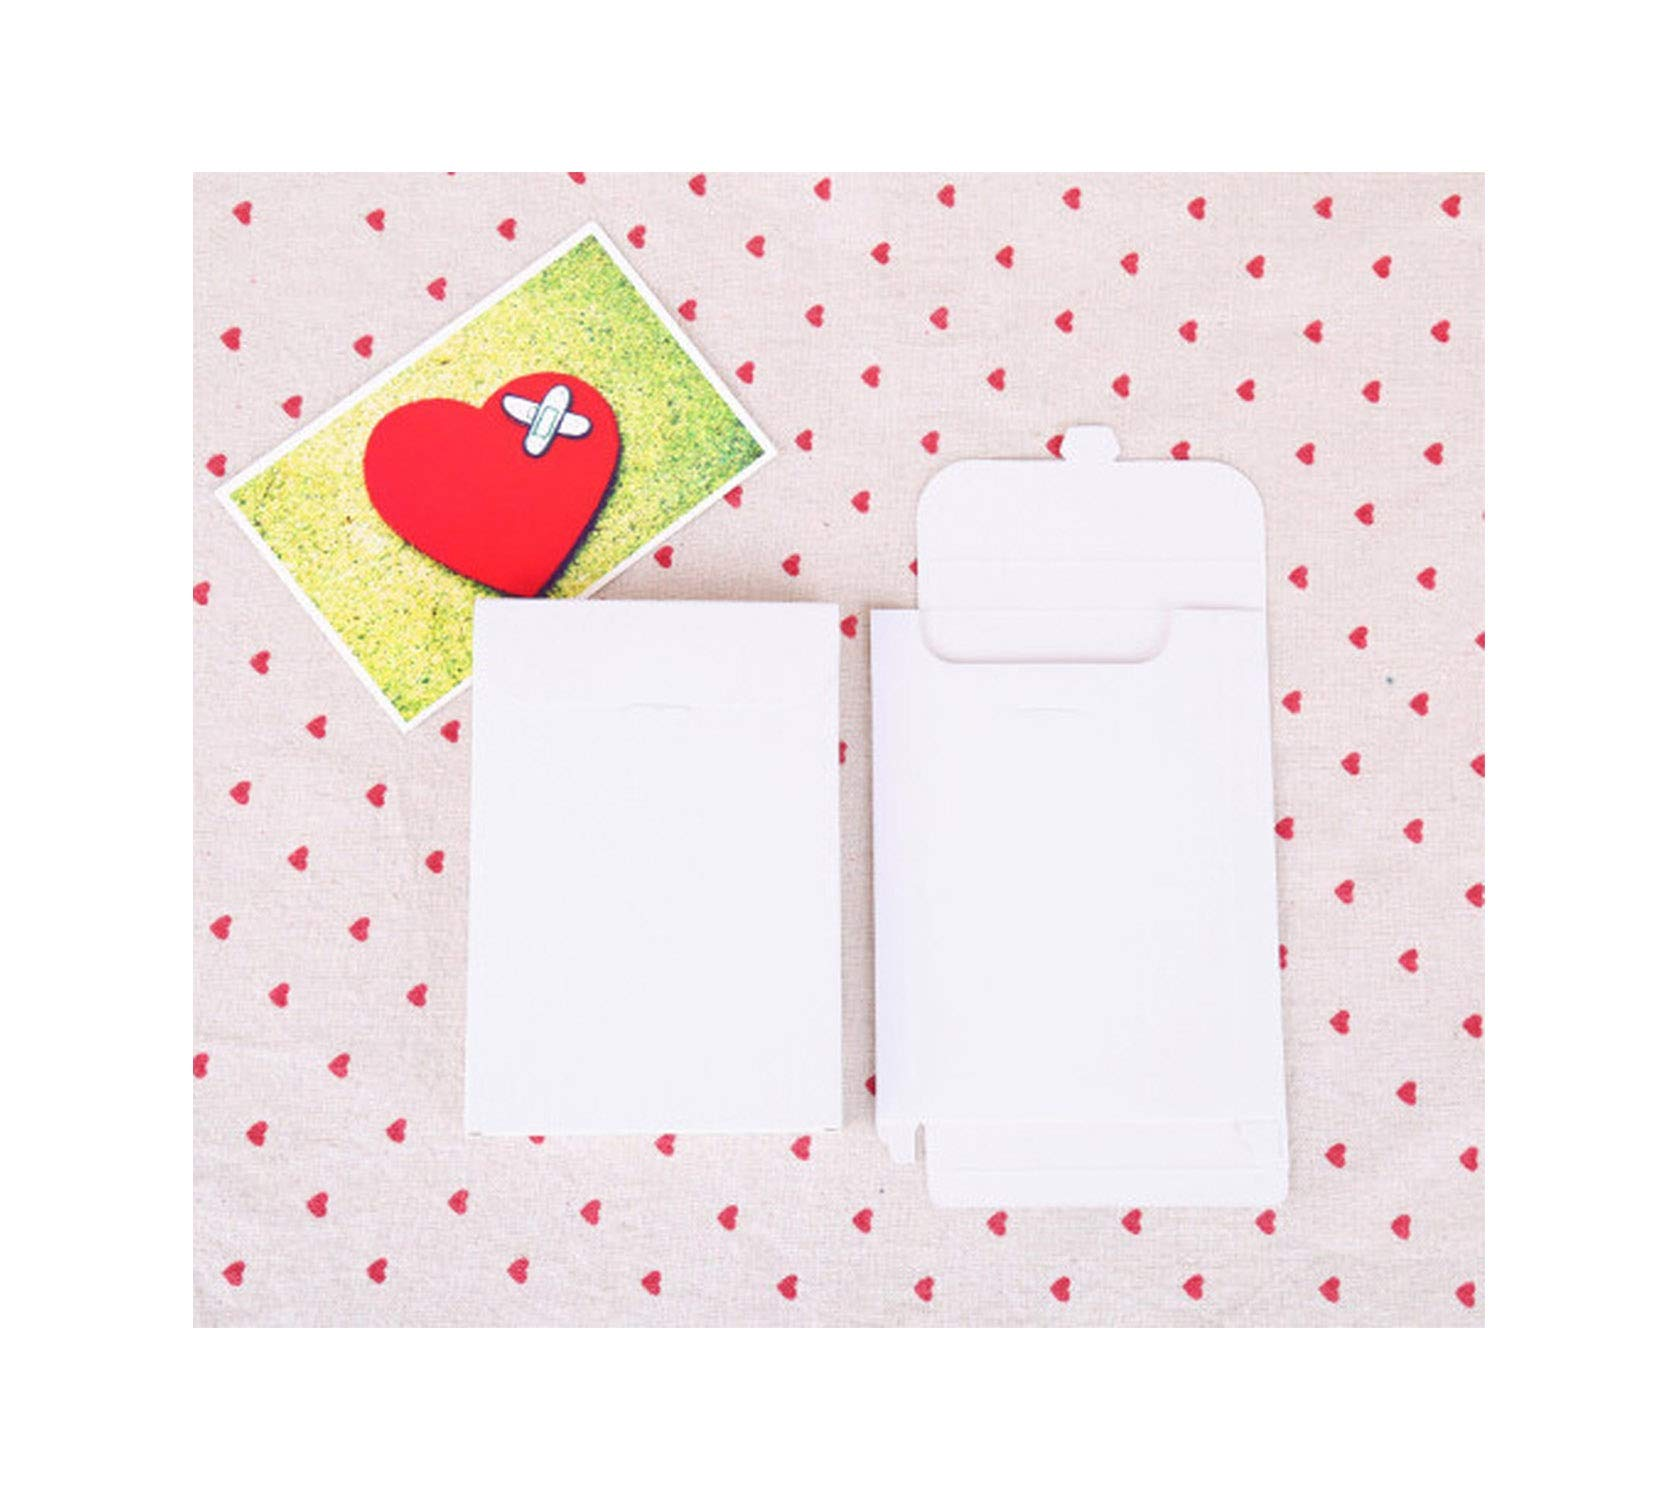 50Pcs/Lot 3 Colors Vintage Blank Kraft Paper DIY Multifunction Envelope,Black Postcard Box,White Package Paper,White,15.5X10.8X1.5Cm